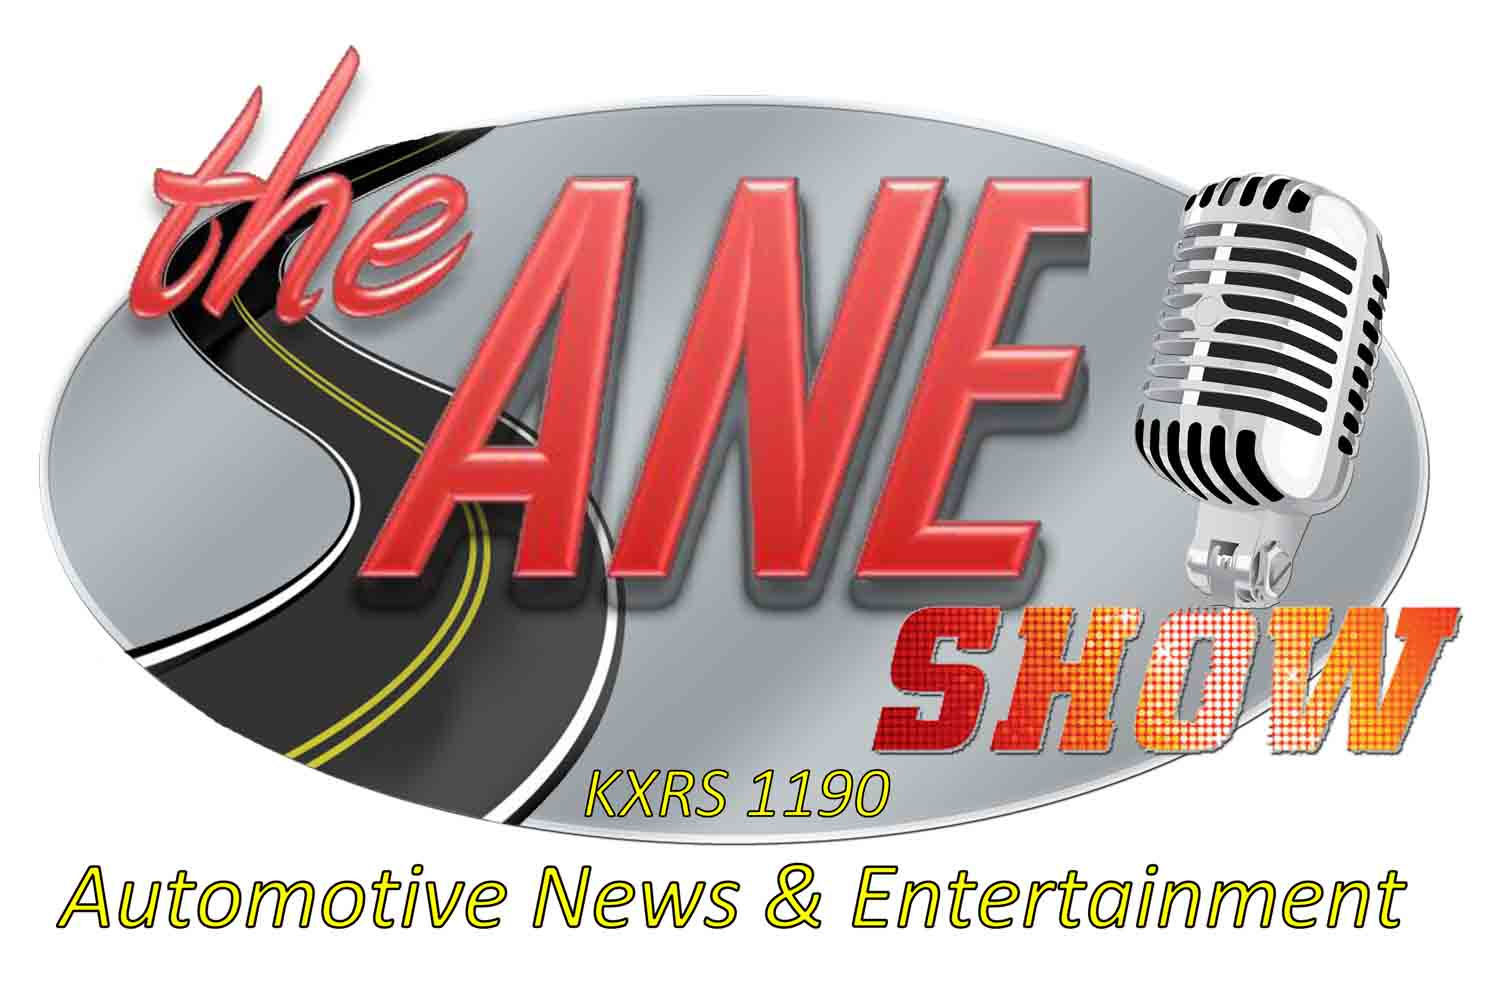 the ANE Show Saturdays at 9 AM on 1190 AM